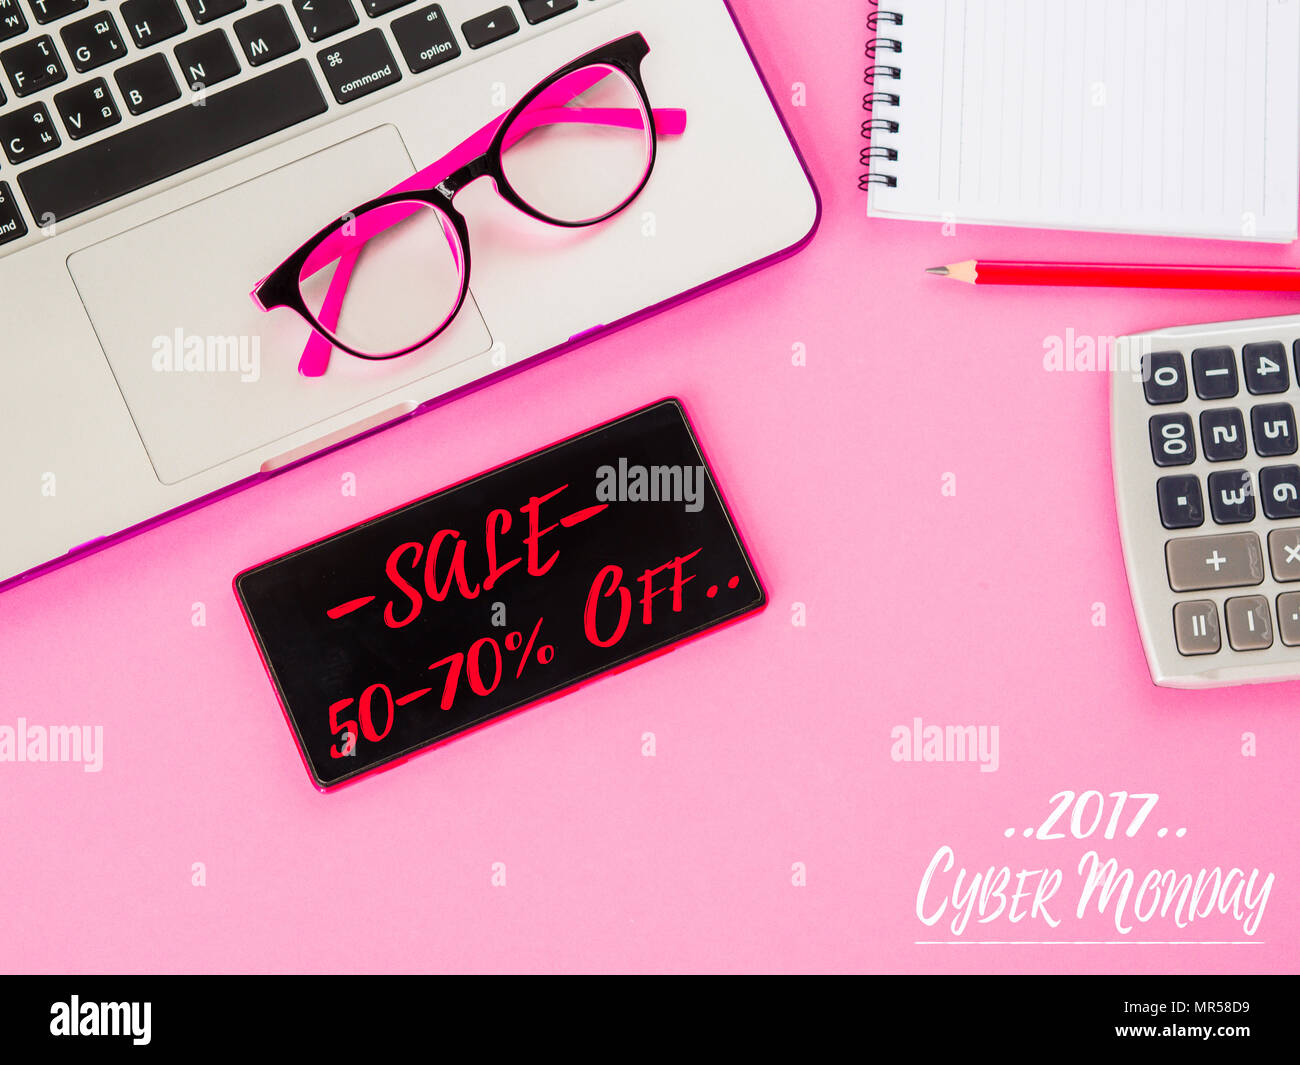 Cyber Monday Words With Mobile Phone And Office Accessories On Pink  Background.